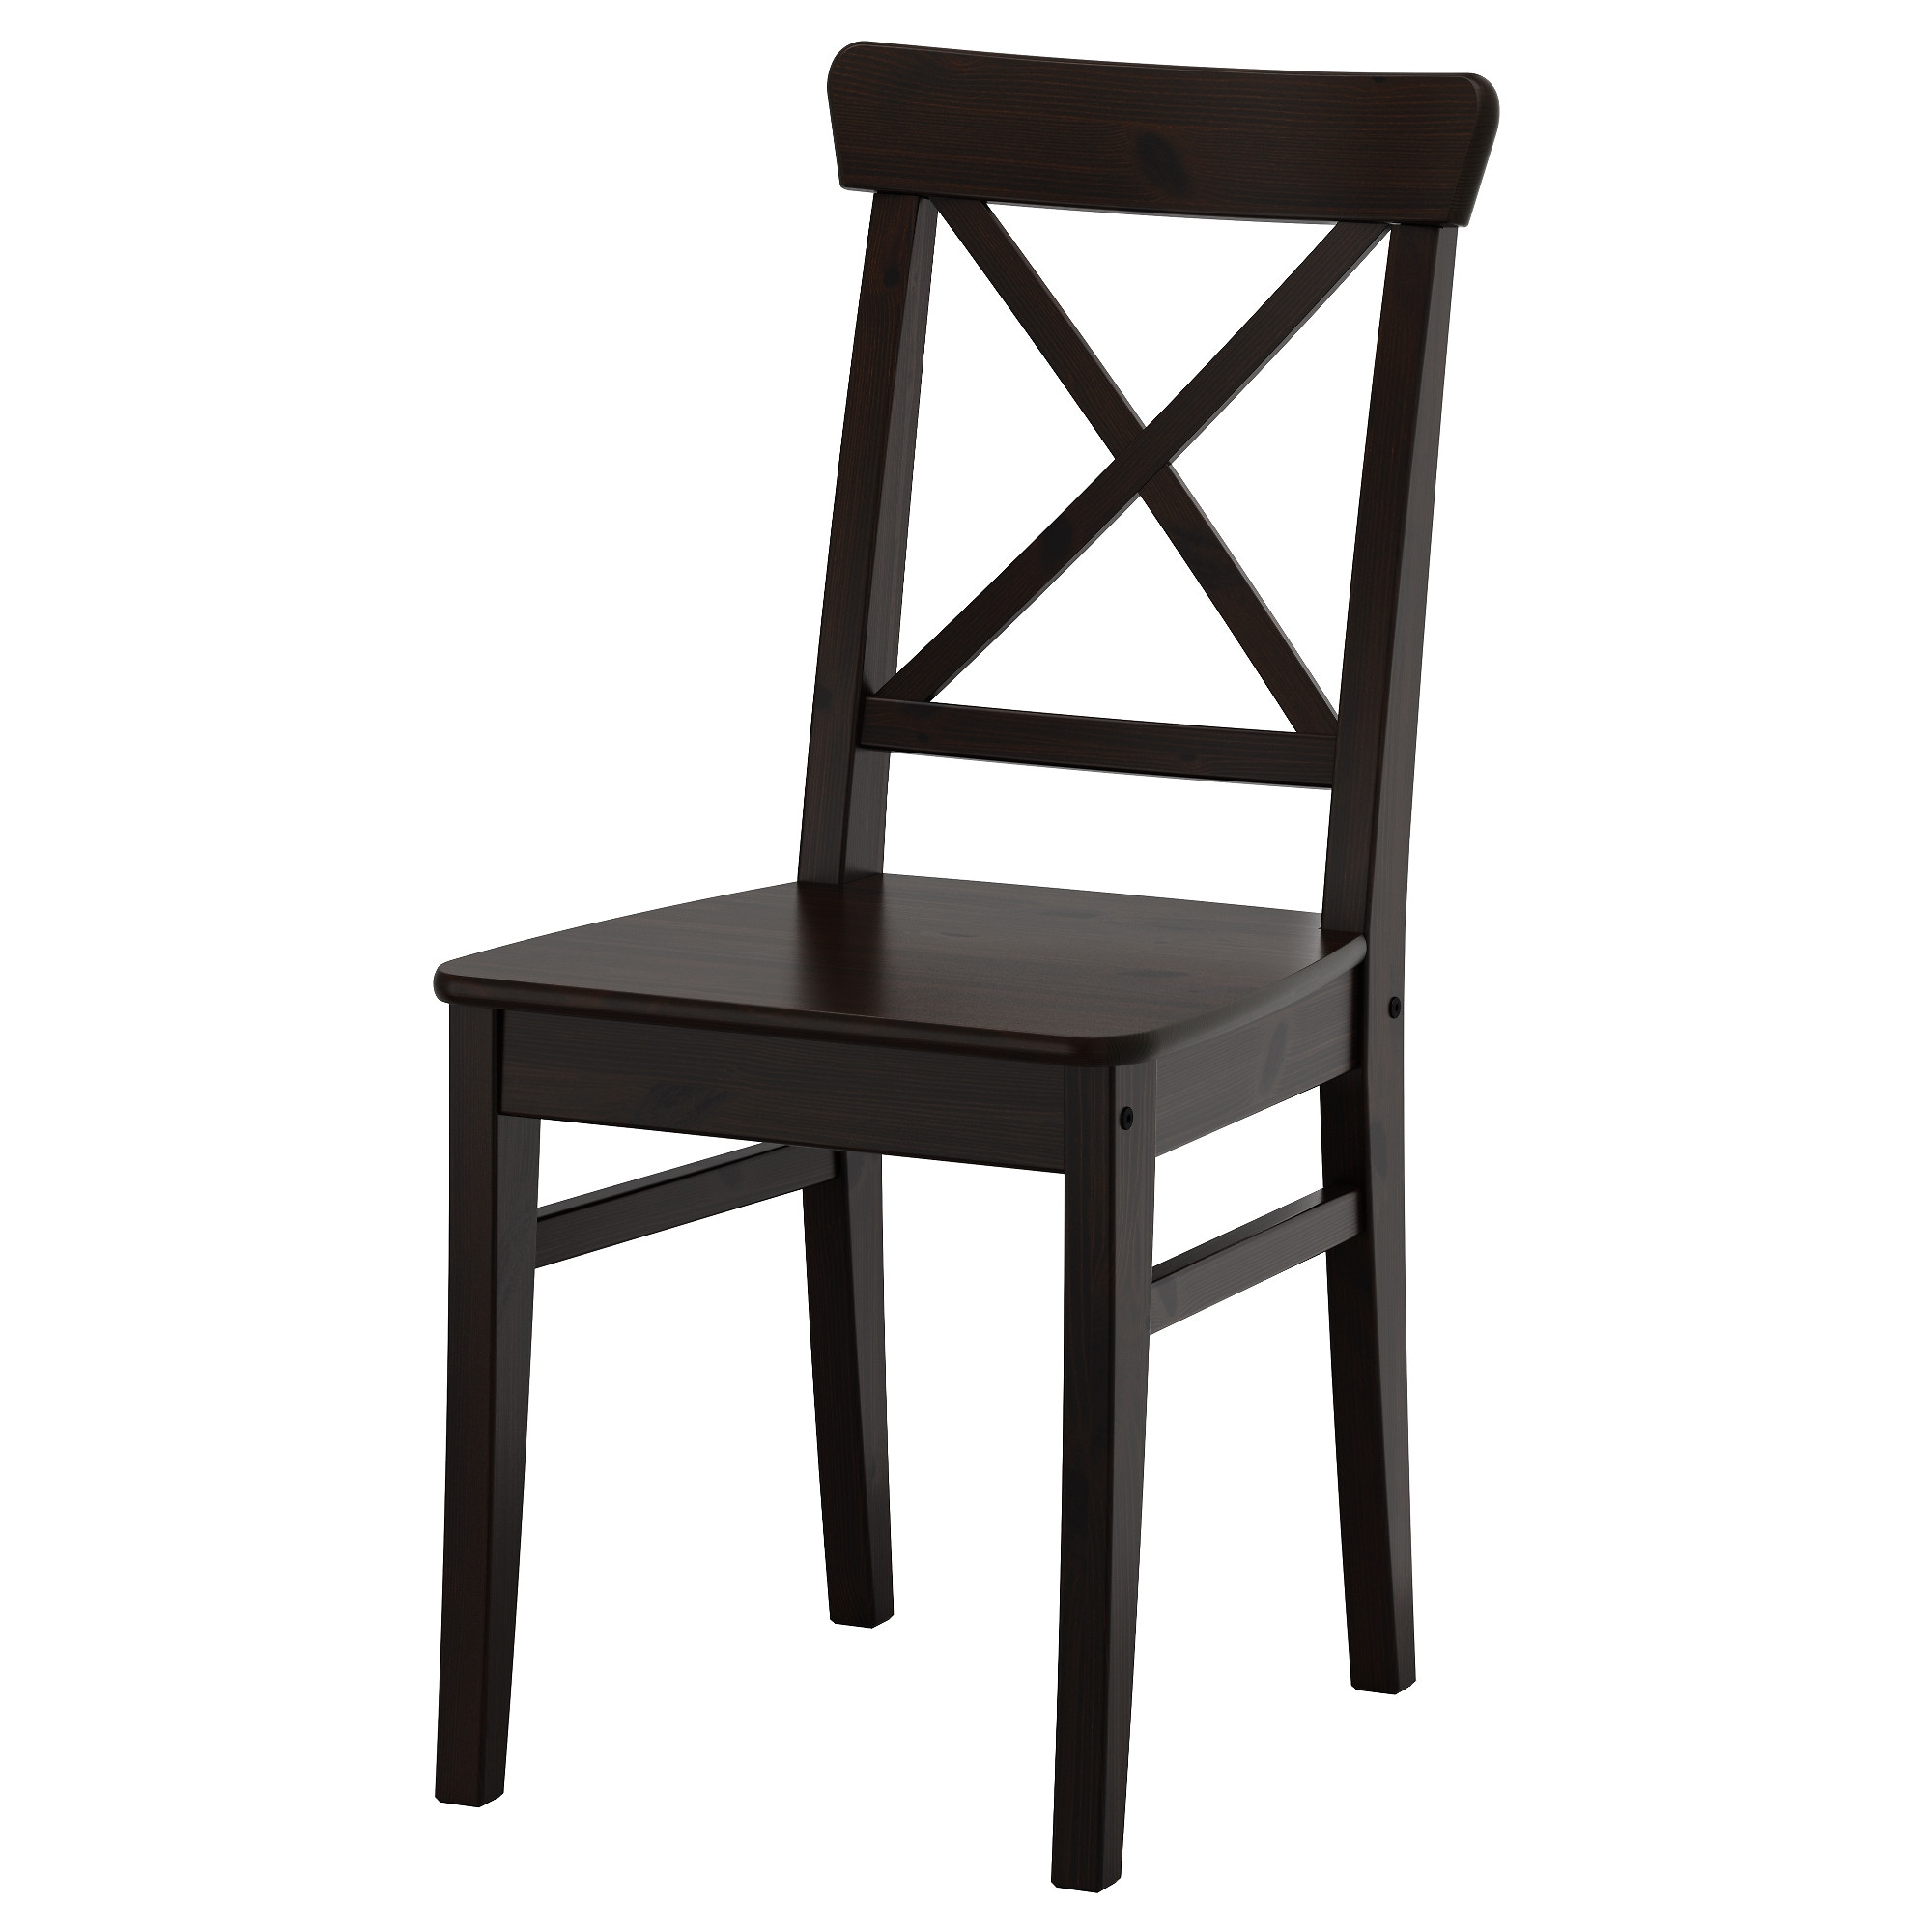 Dining Chairs Brown dining chairs - dining chairs & upholstered chairs - ikea